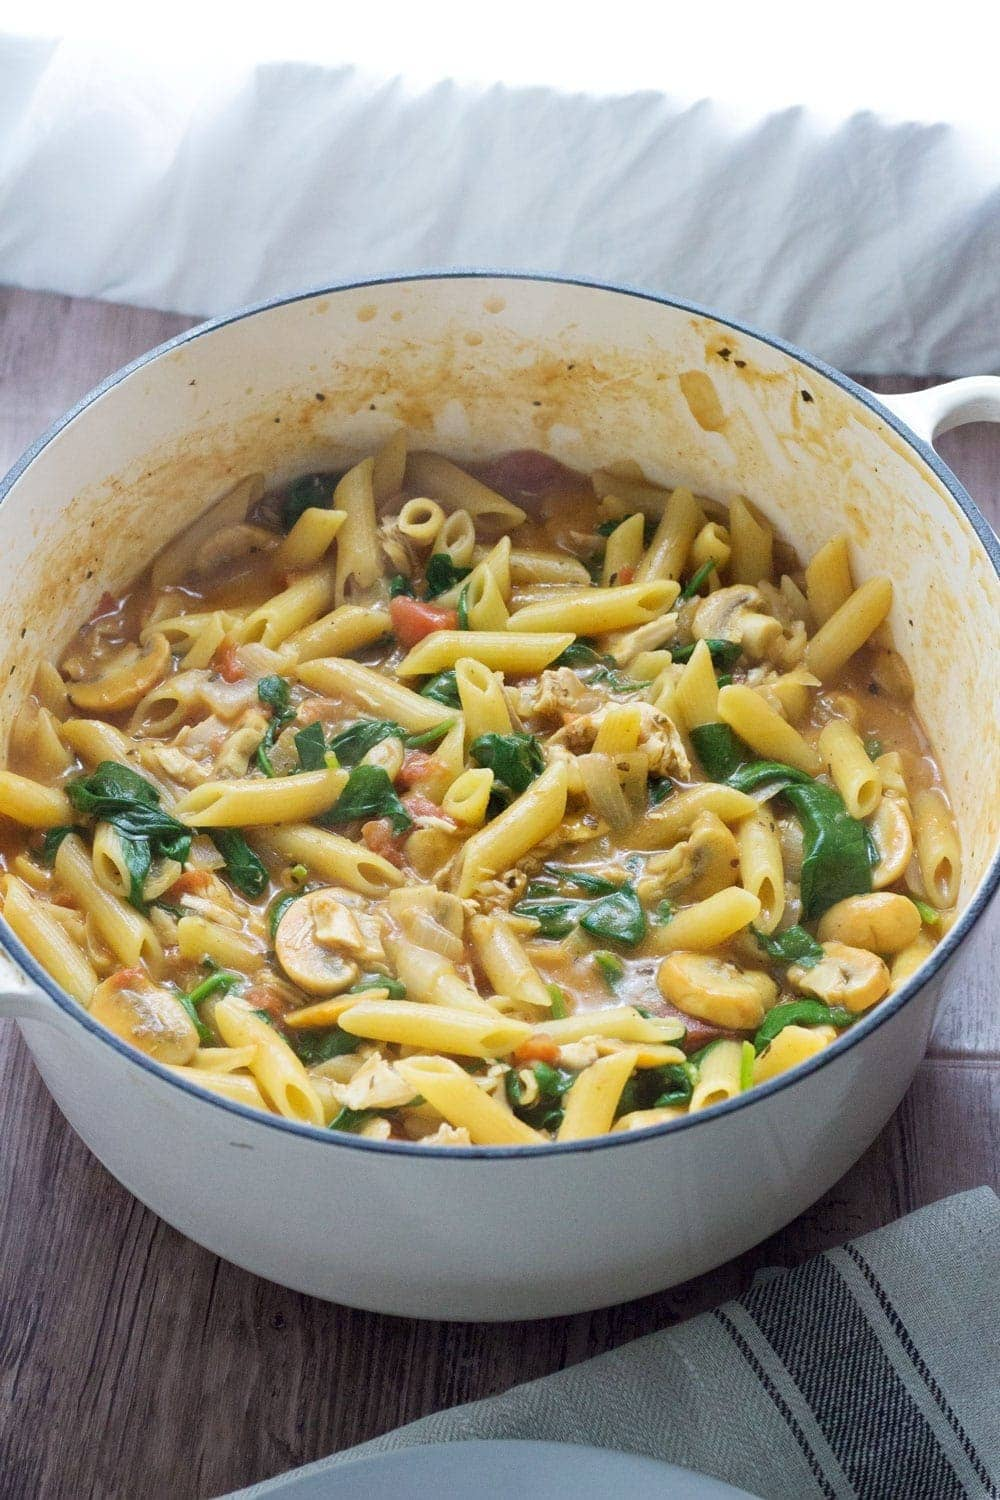 This one pot pasta with chicken, spinach & mushroom is ready in 30 minutes & makes a great weeknight meal. Add any veg you like to make it even healthier!